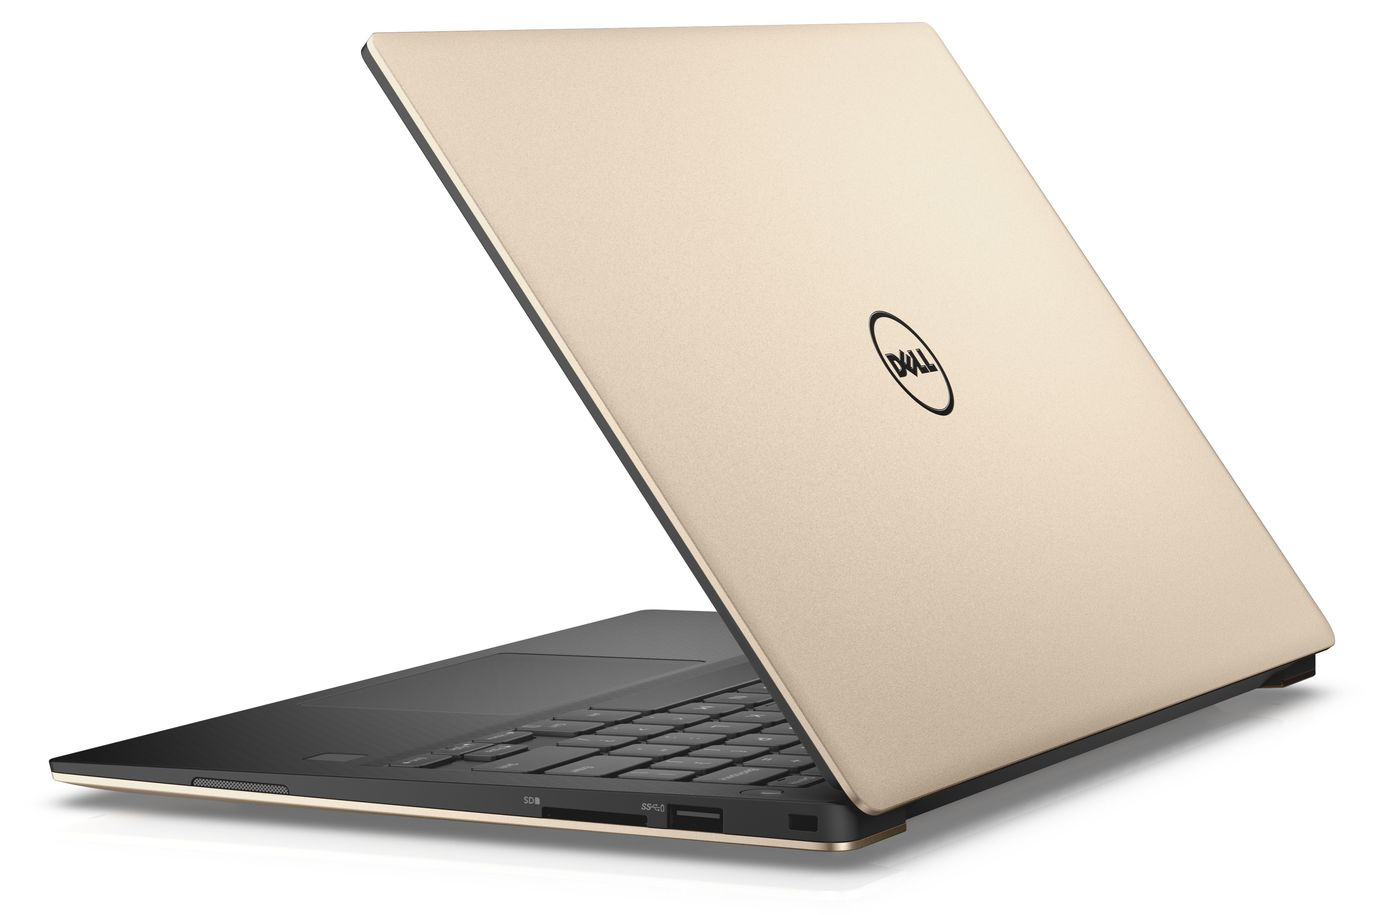 Dell XPS 13 Rose Gold, chip Kaby Lake, giá từ 1.048USD ảnh 5